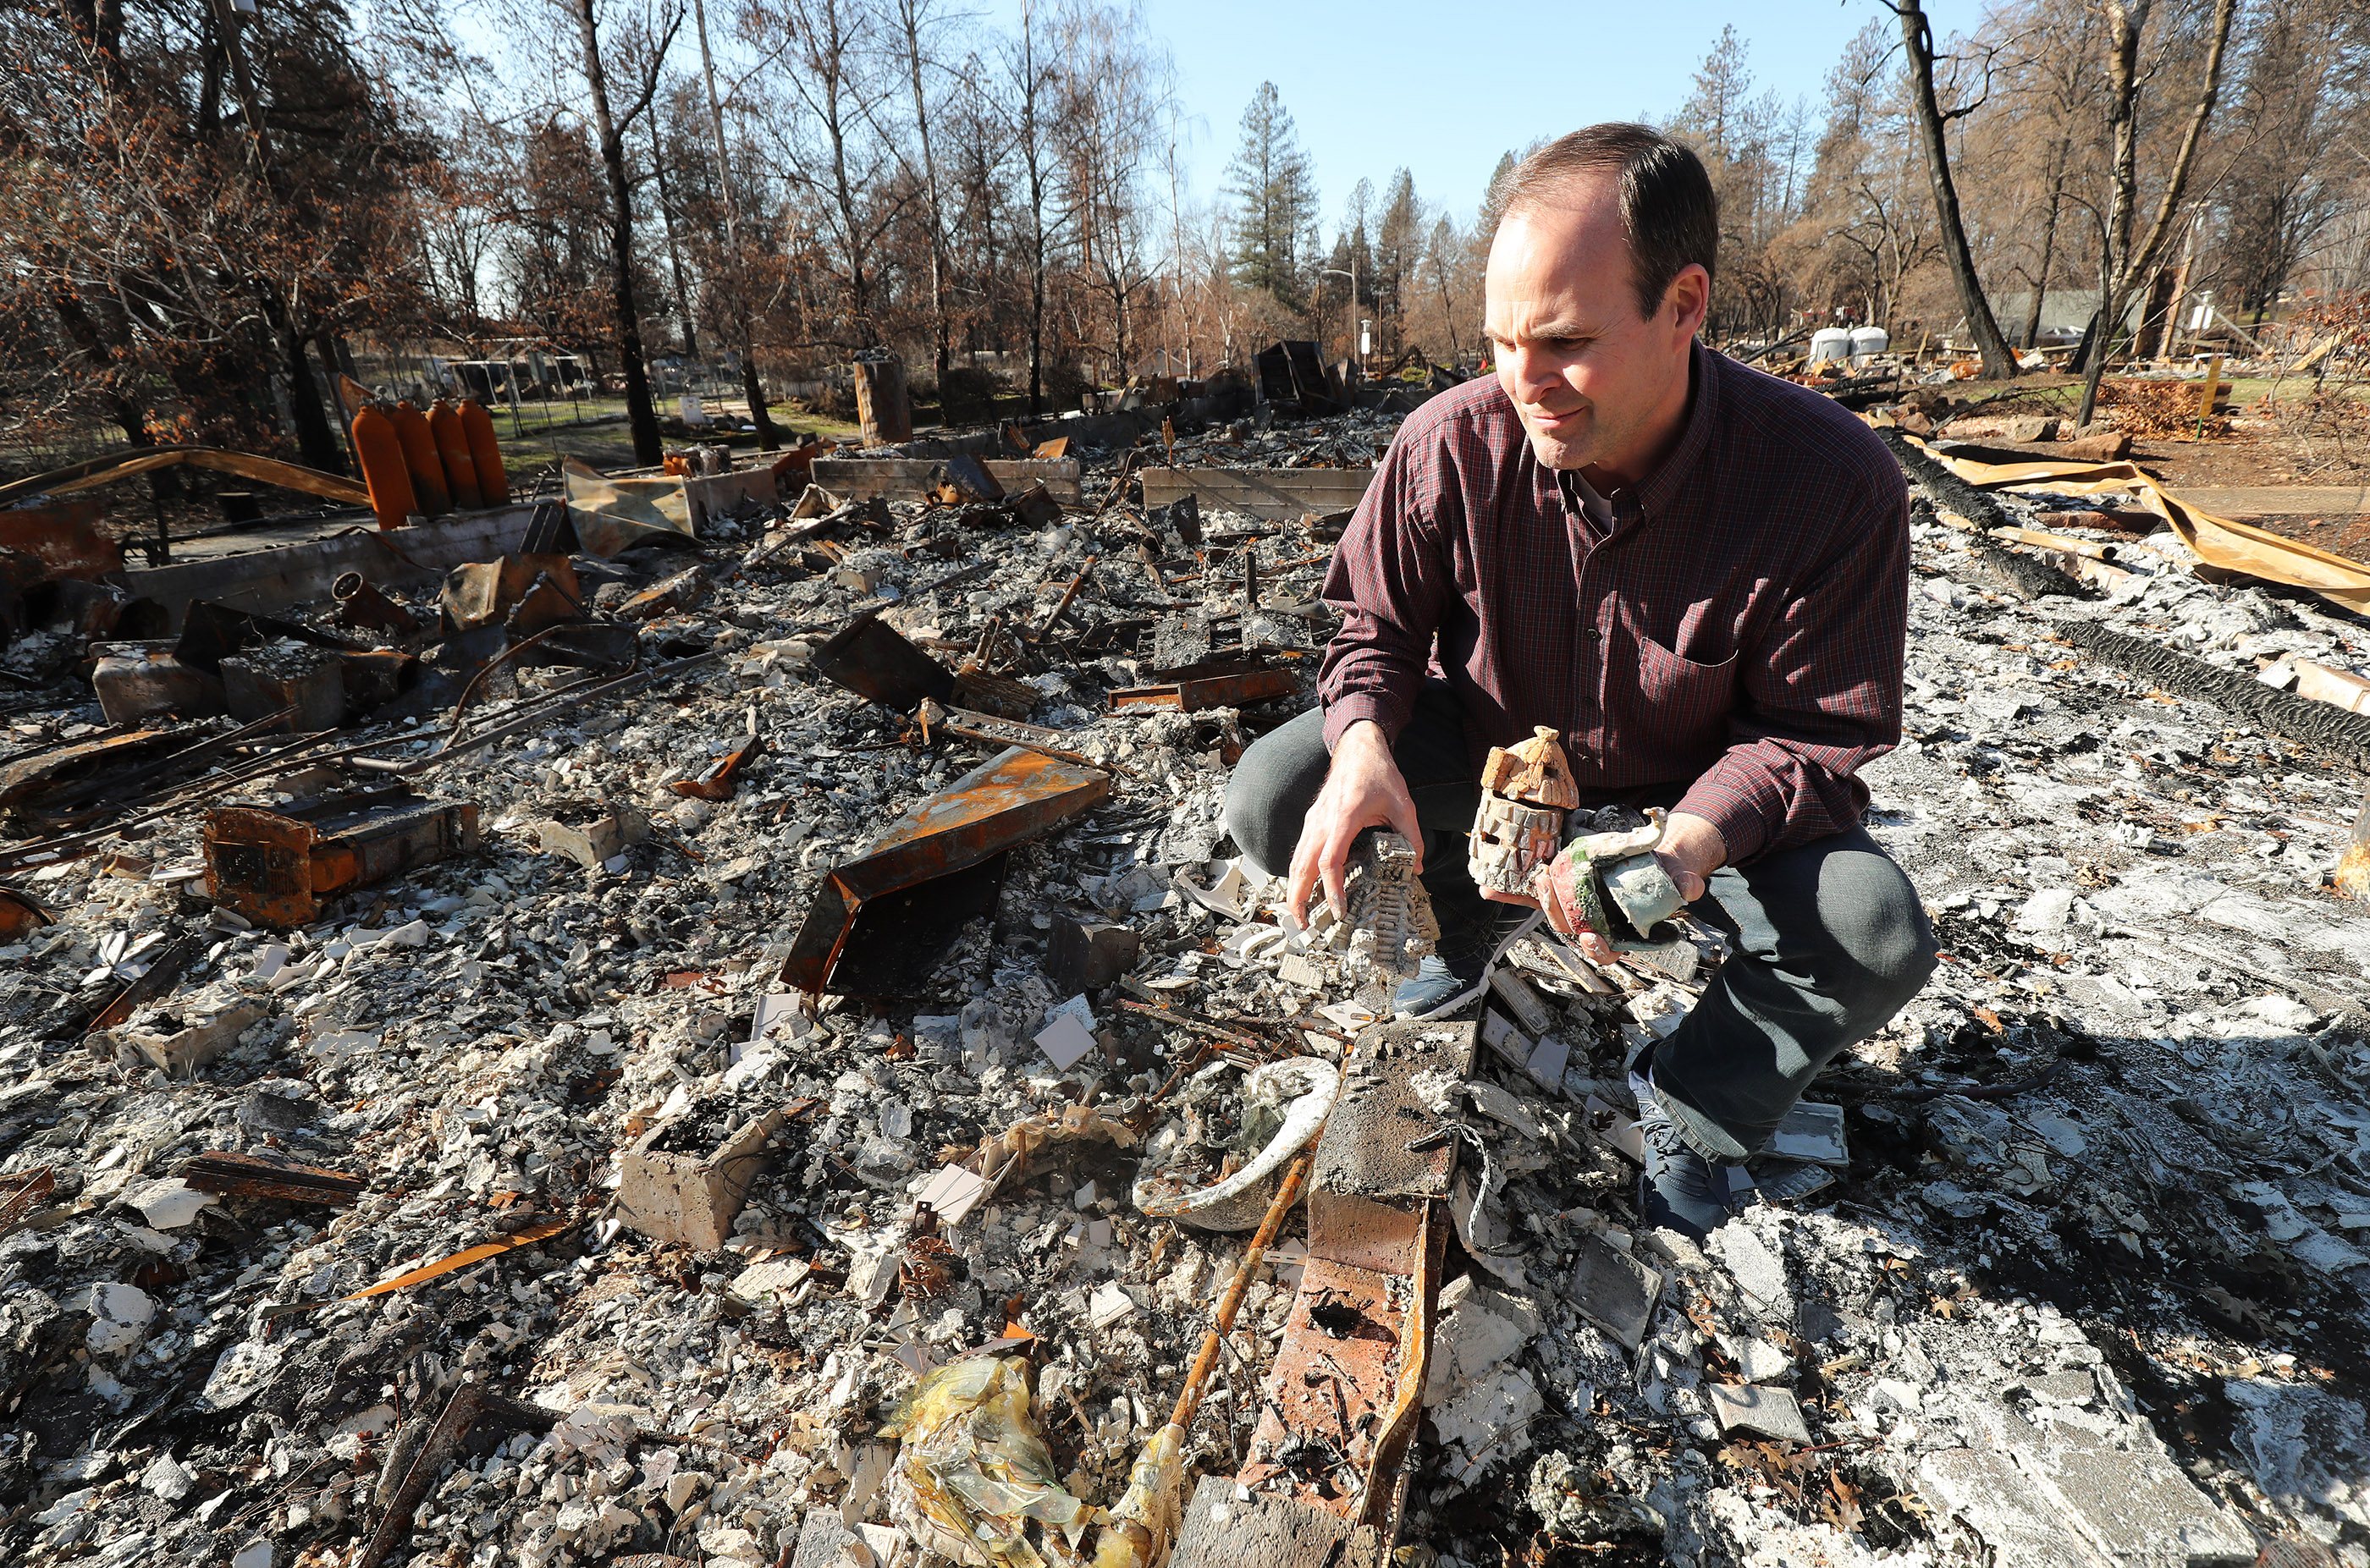 Jeremy Chatfield finds items from his destroyed dental office in Paradise, California, on Saturday, Jan. 12, 2019, two months after the Camp Fire destroyed more than 18,000 homes and businesses.. Chatfield also lost his home.